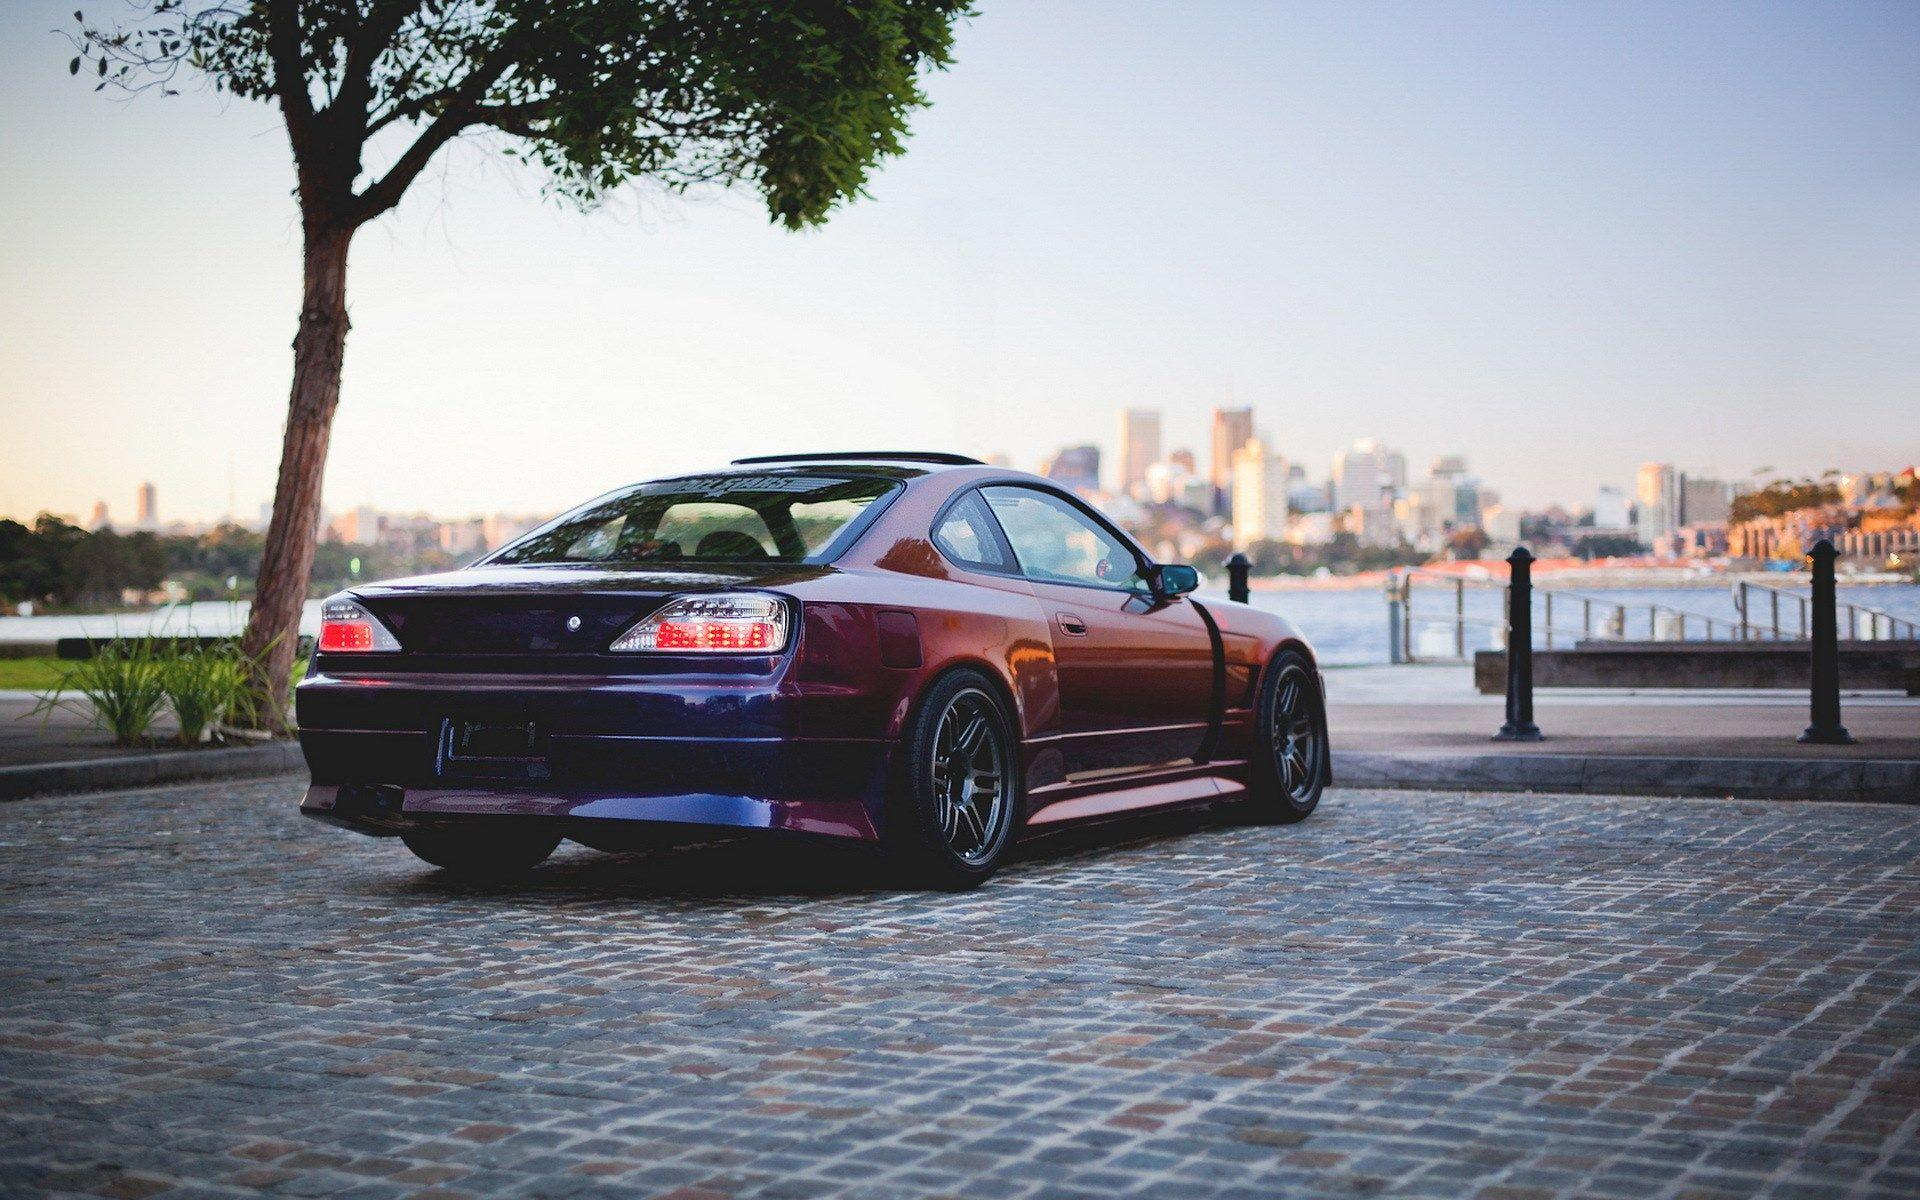 HQ Definition Wallpapers Desktop nissan silvia s15 wallpapers